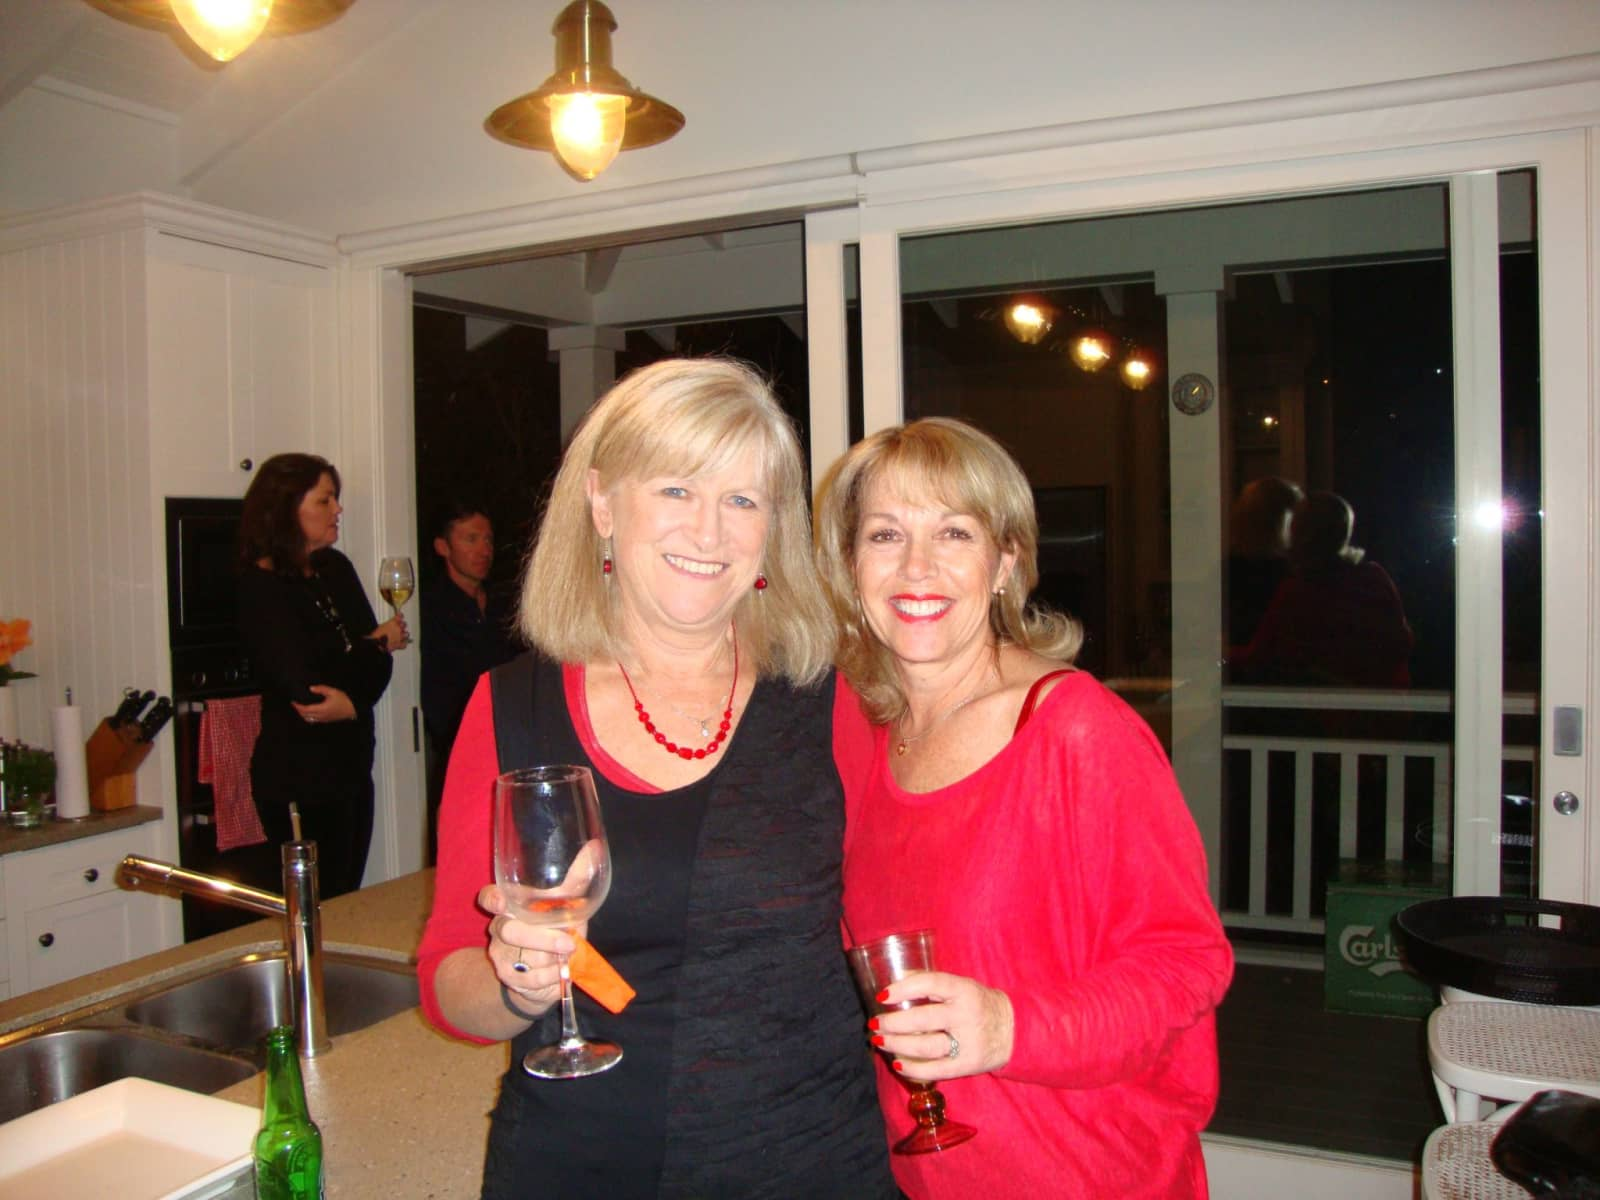 Mary & Susan from Auckland, New Zealand